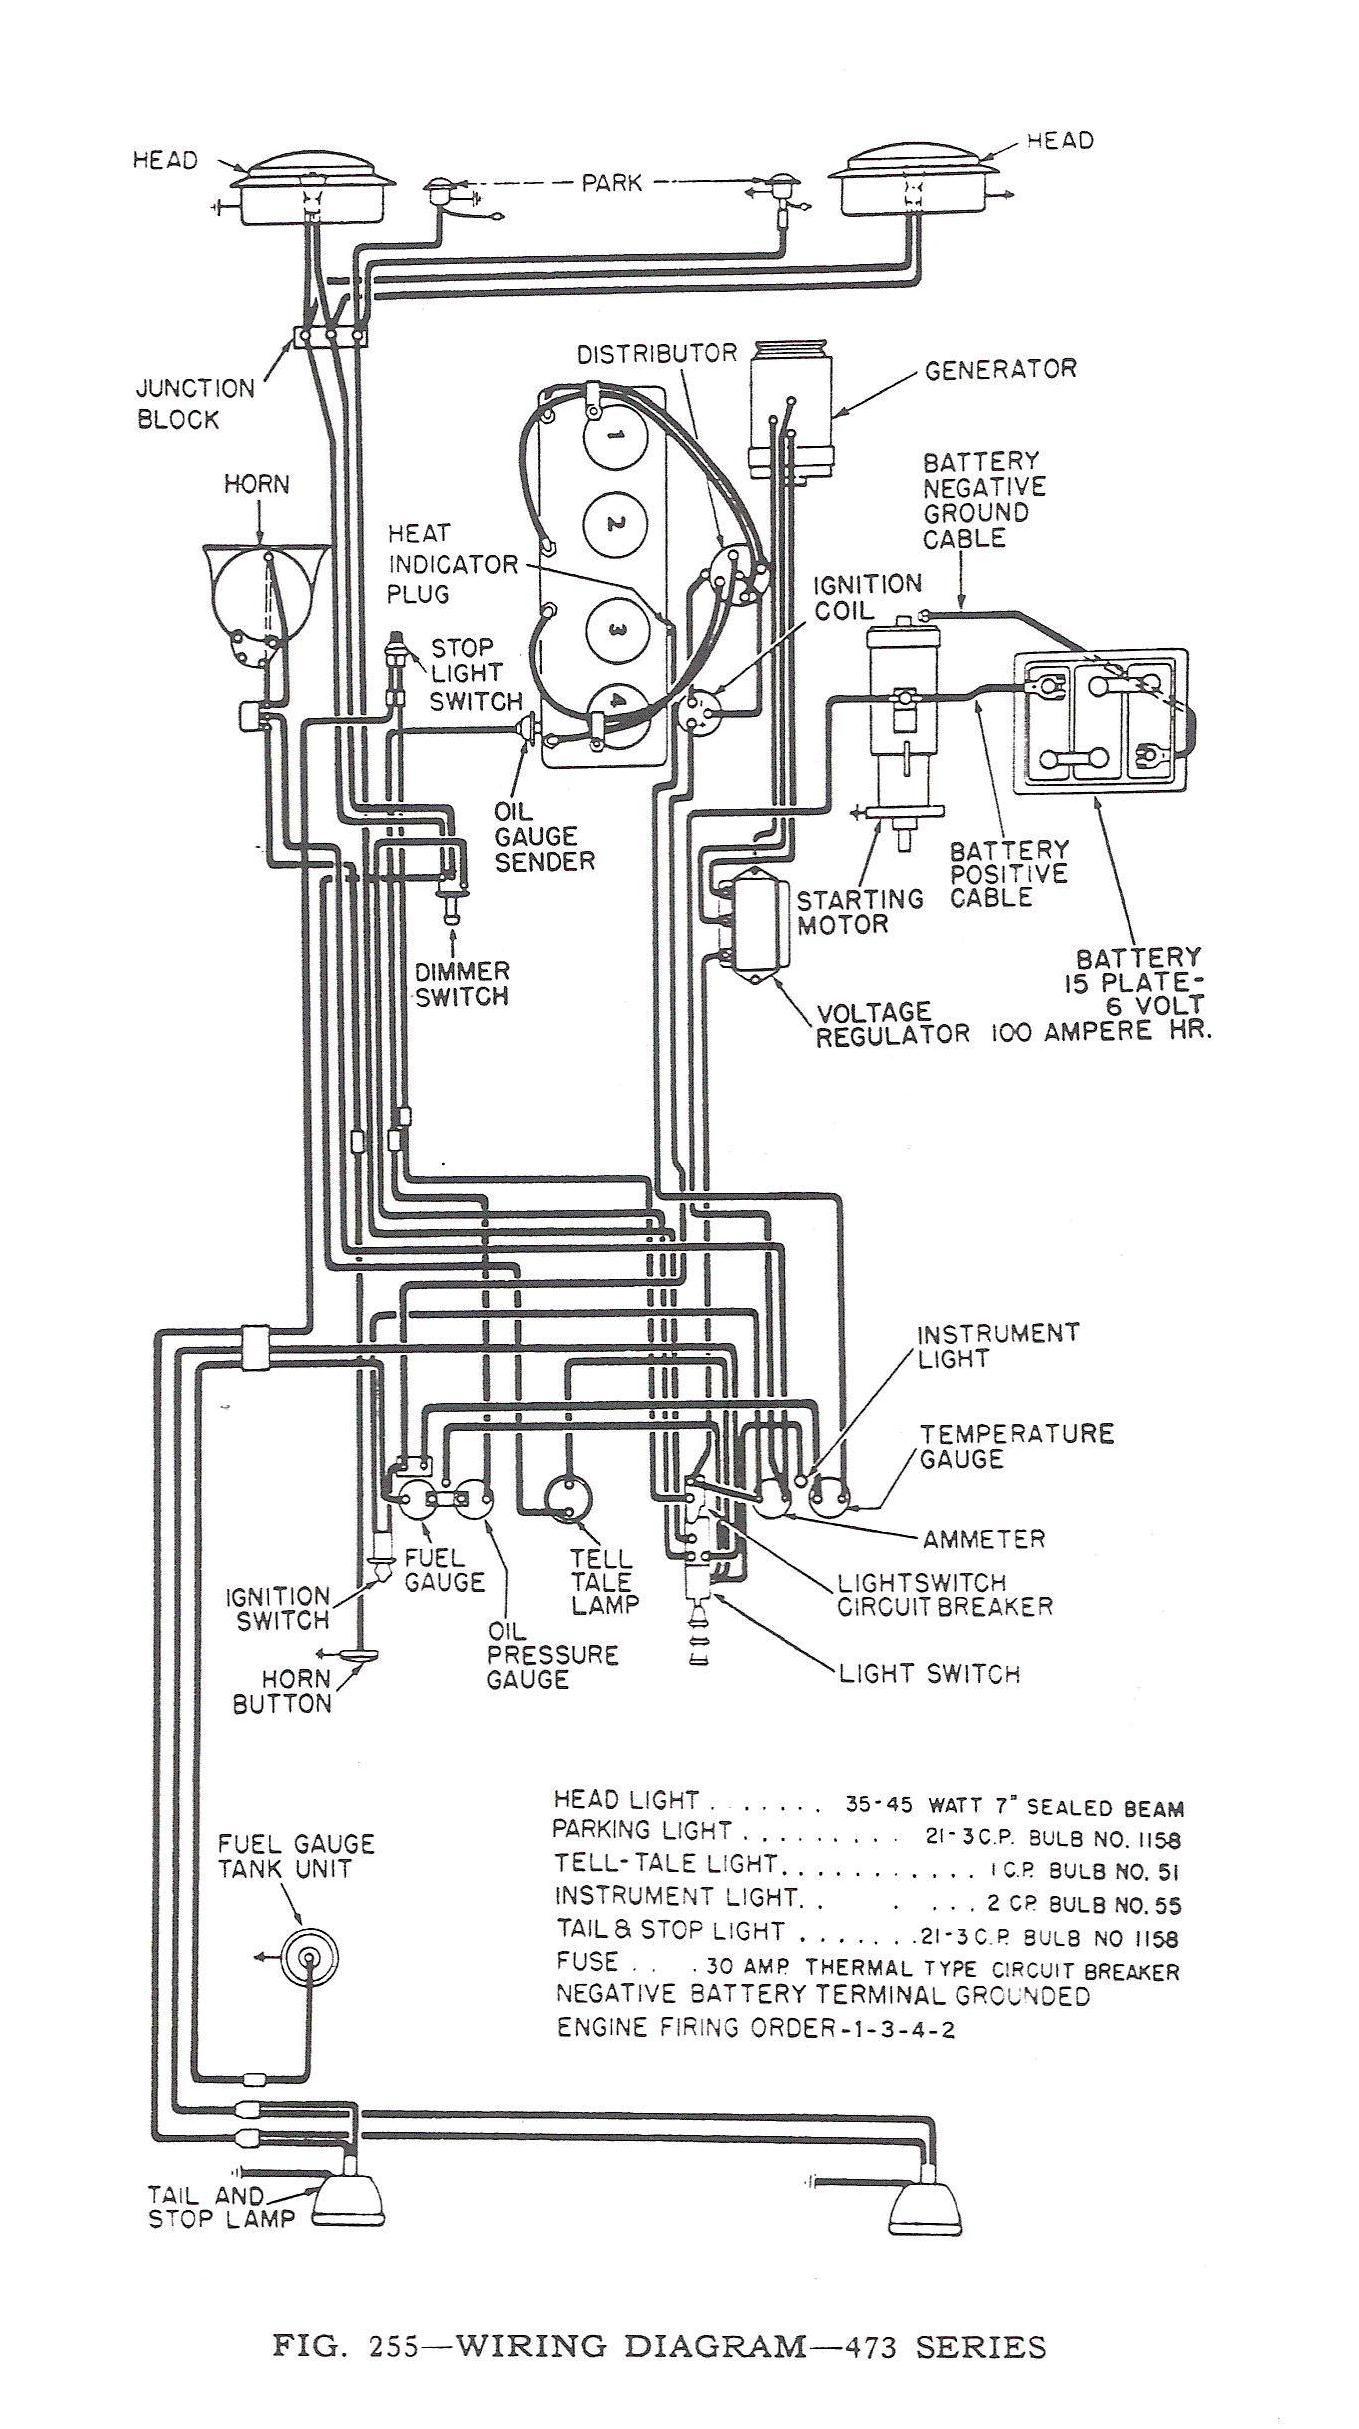 Jeep Series 473 Wiring Diagrams